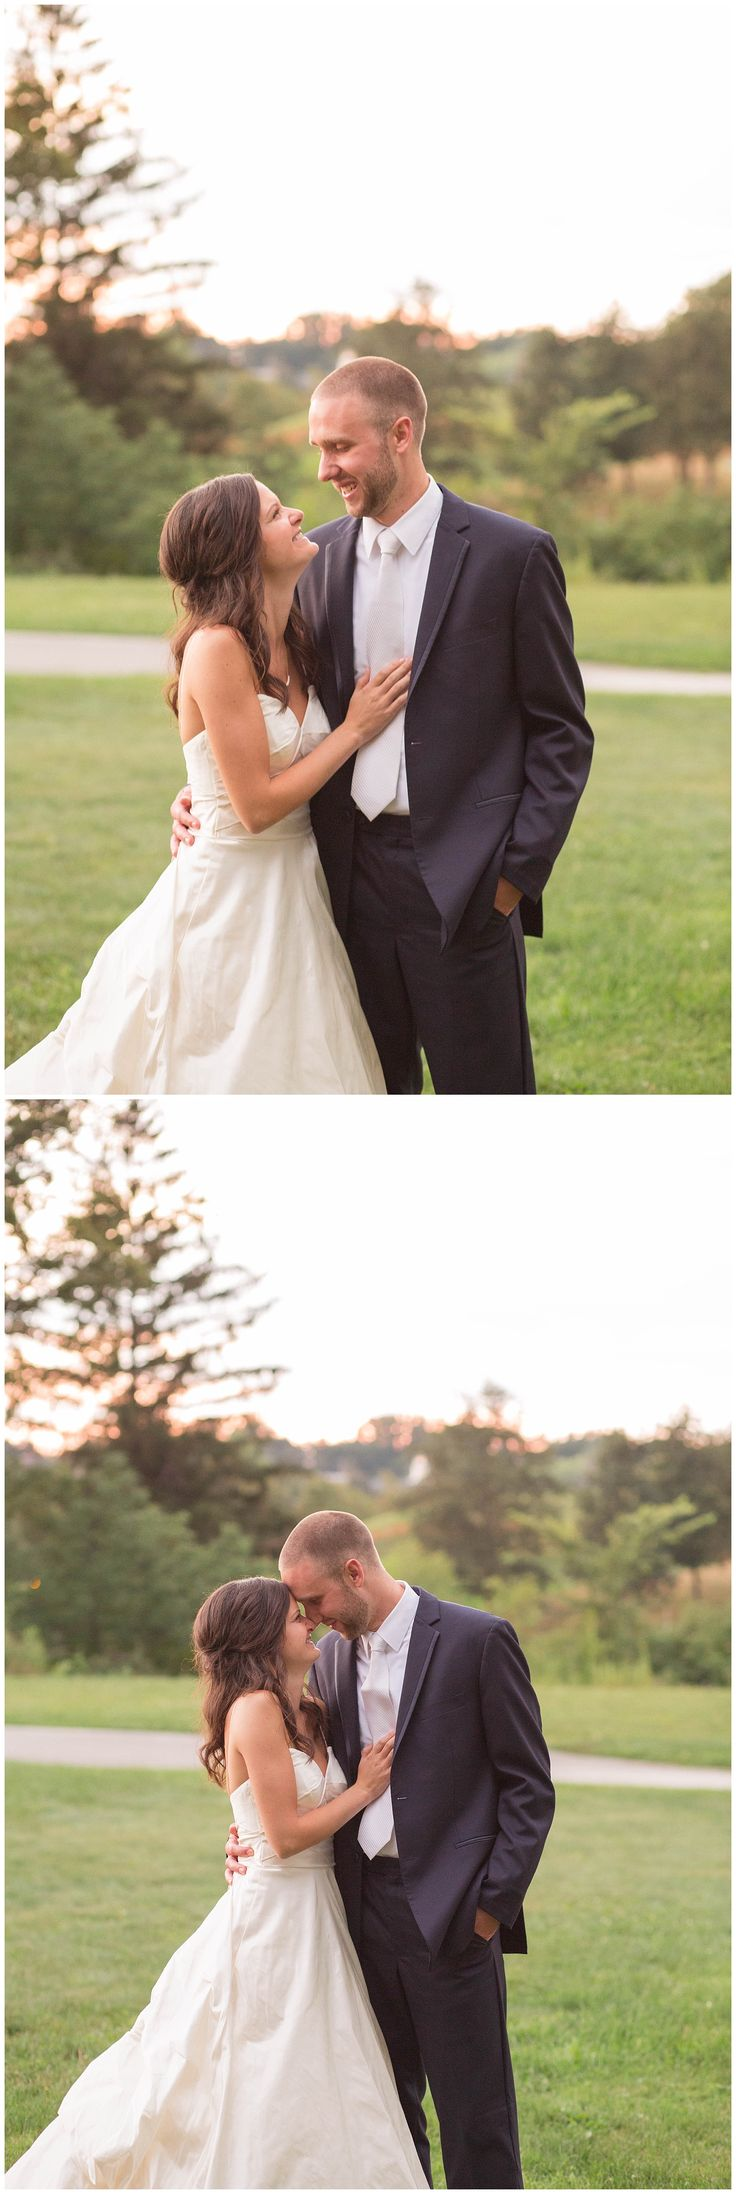 Outdoor Cleveland Wedding Inspiration | Monica Brown Photography | monicabrownphoto.com